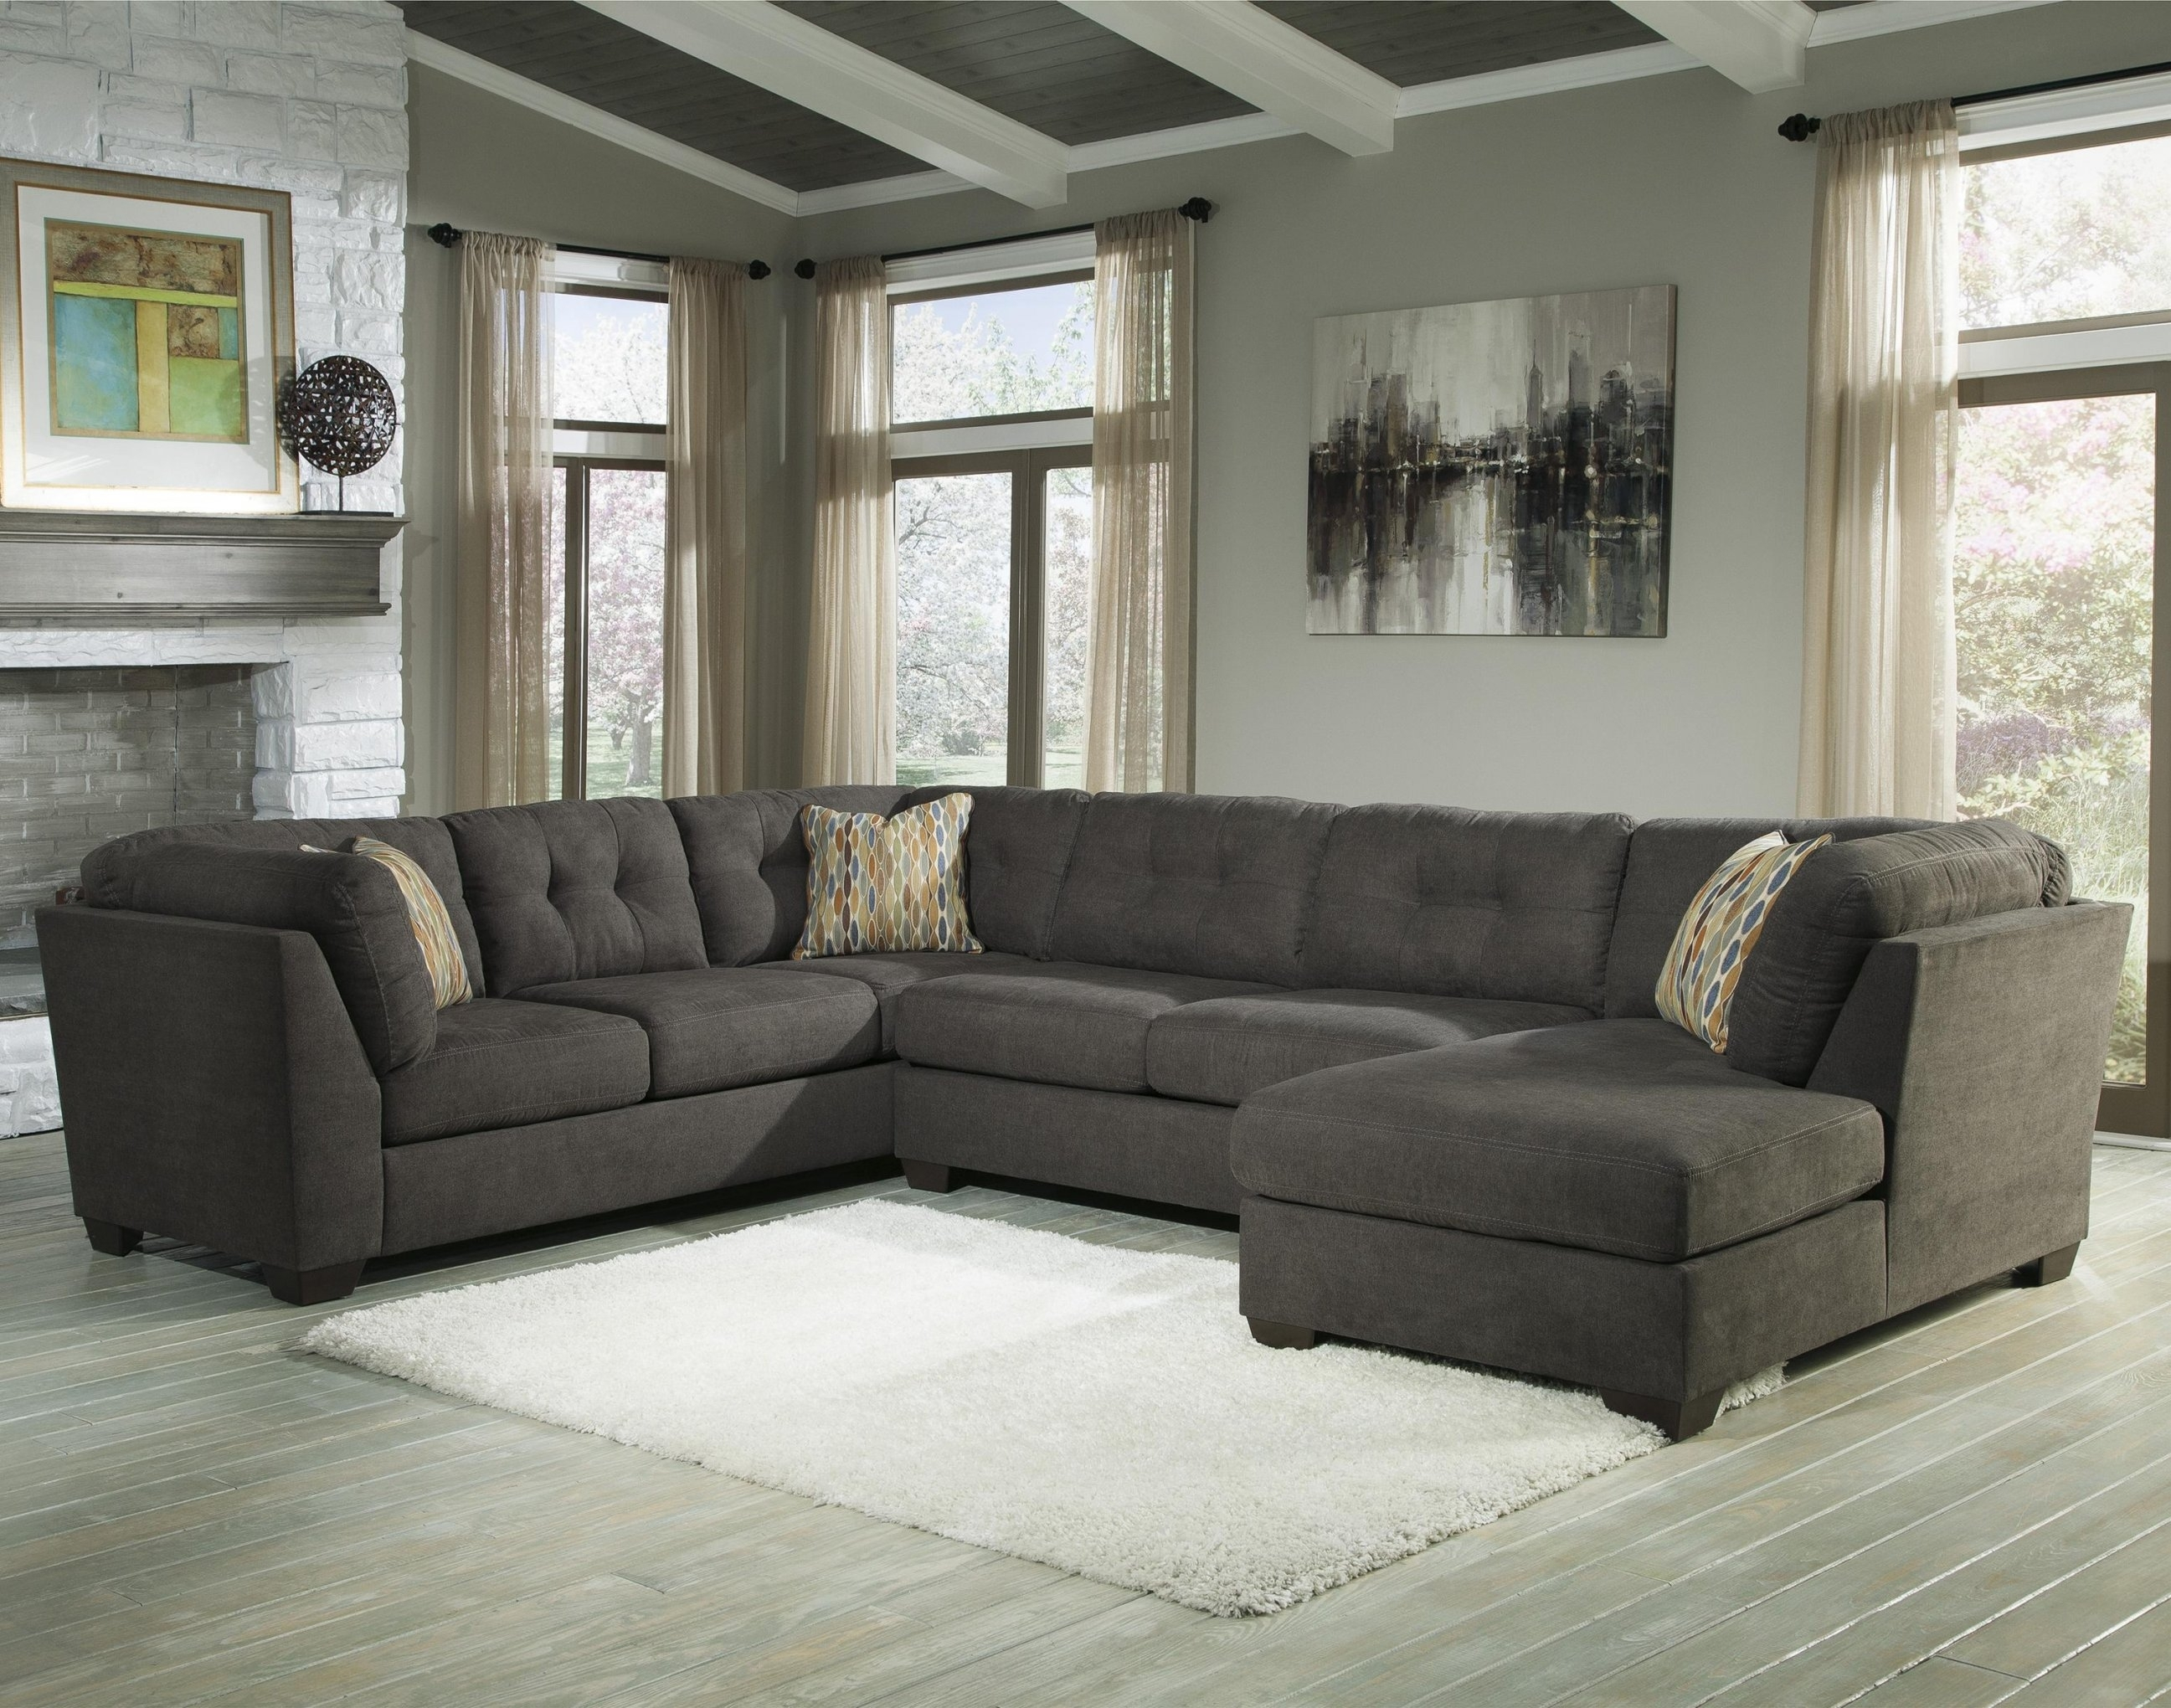 Piece Modular Sectional W/ Armless Sleeper & Right Chaise In 3 Piece Intended For 3 Piece Sectional Sleeper Sofas (View 8 of 10)